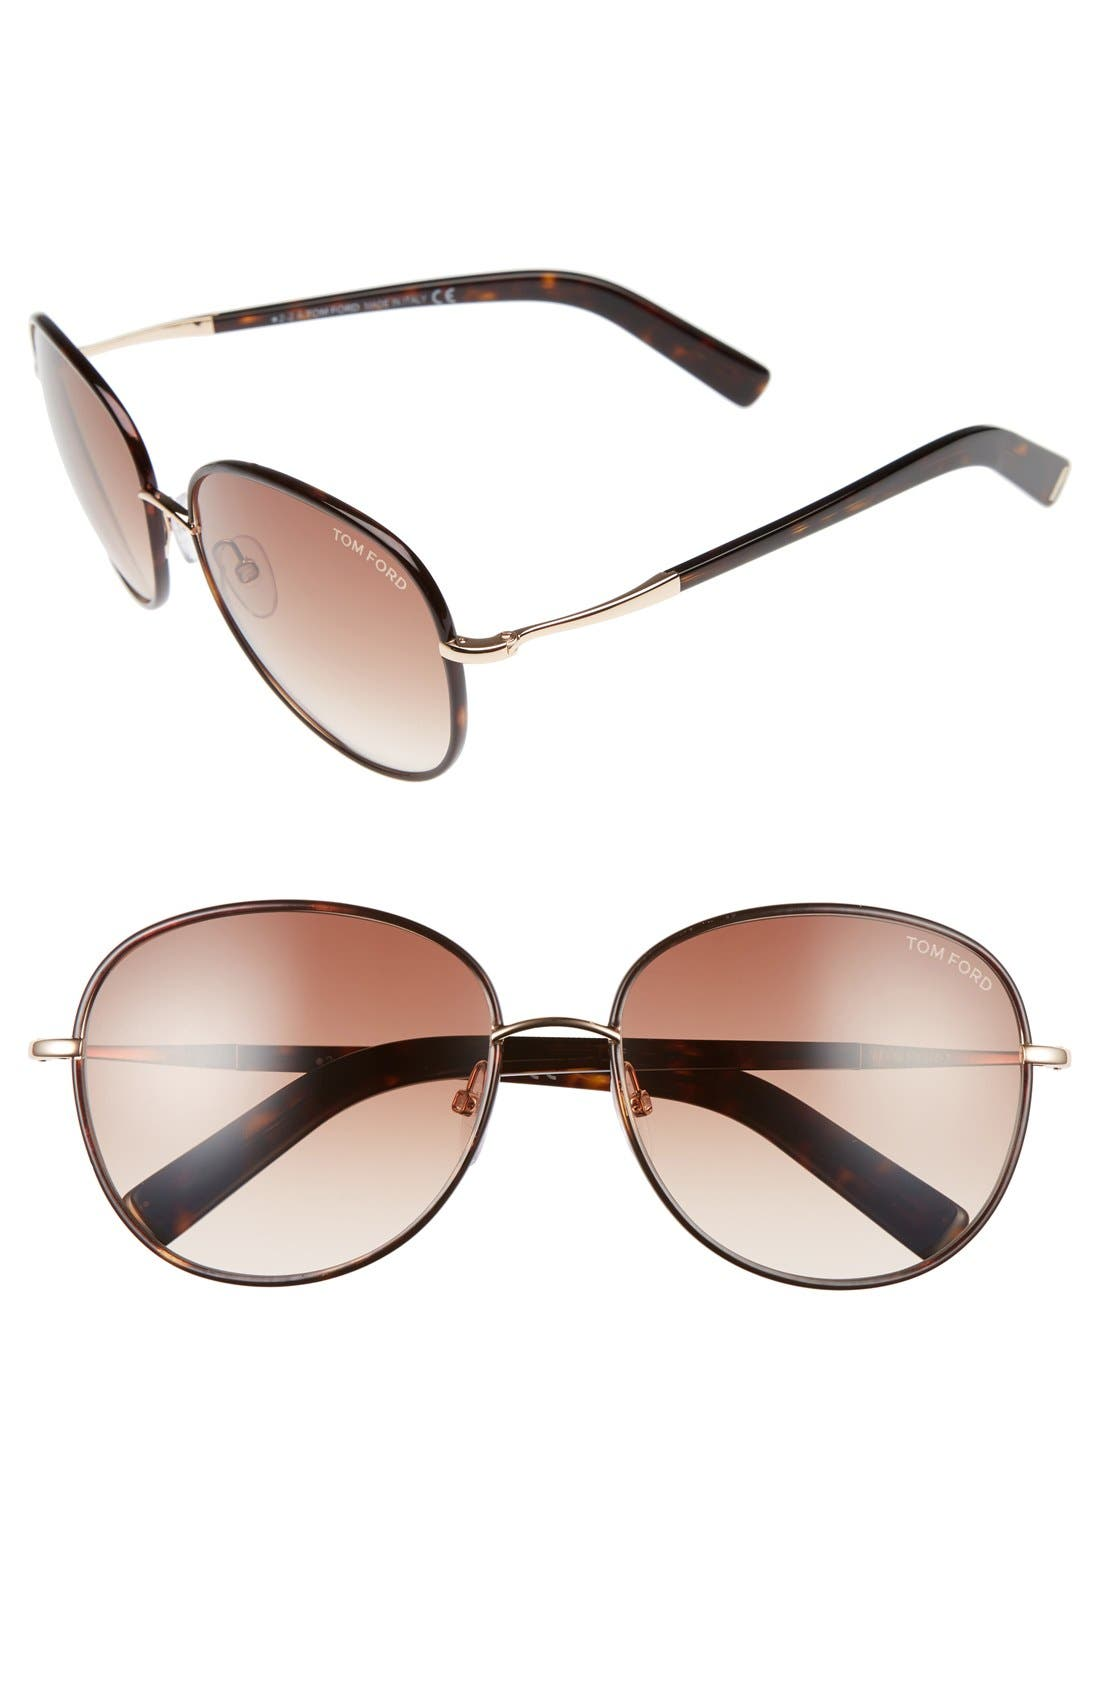 Tom Ford Georgia 5m Sunglasses -